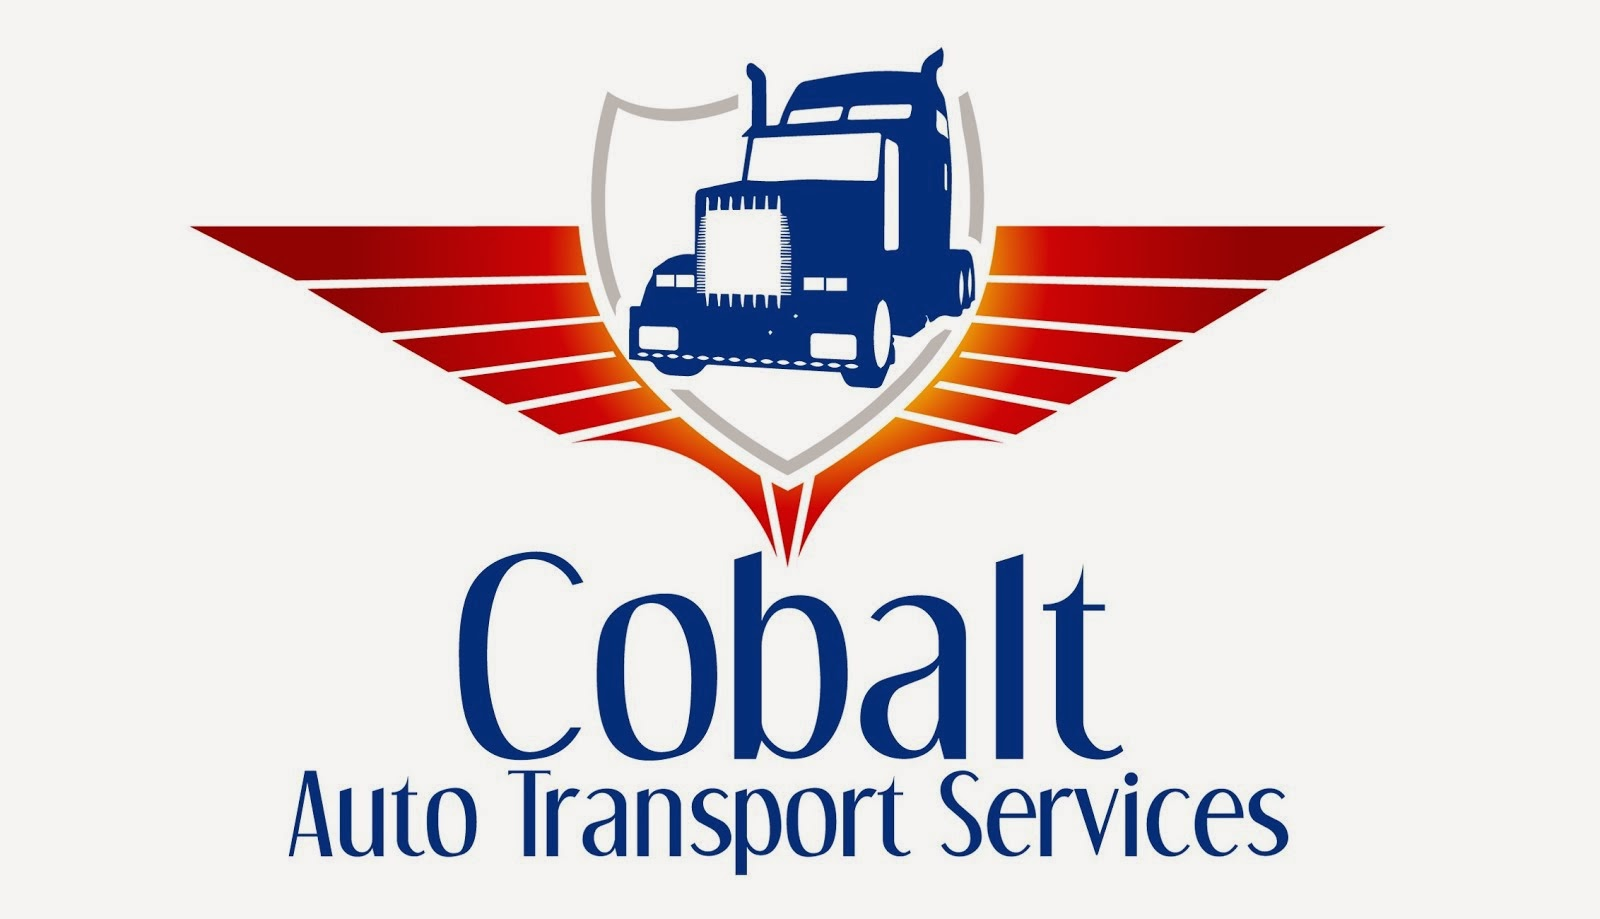 Cobalt Auto Transport Services